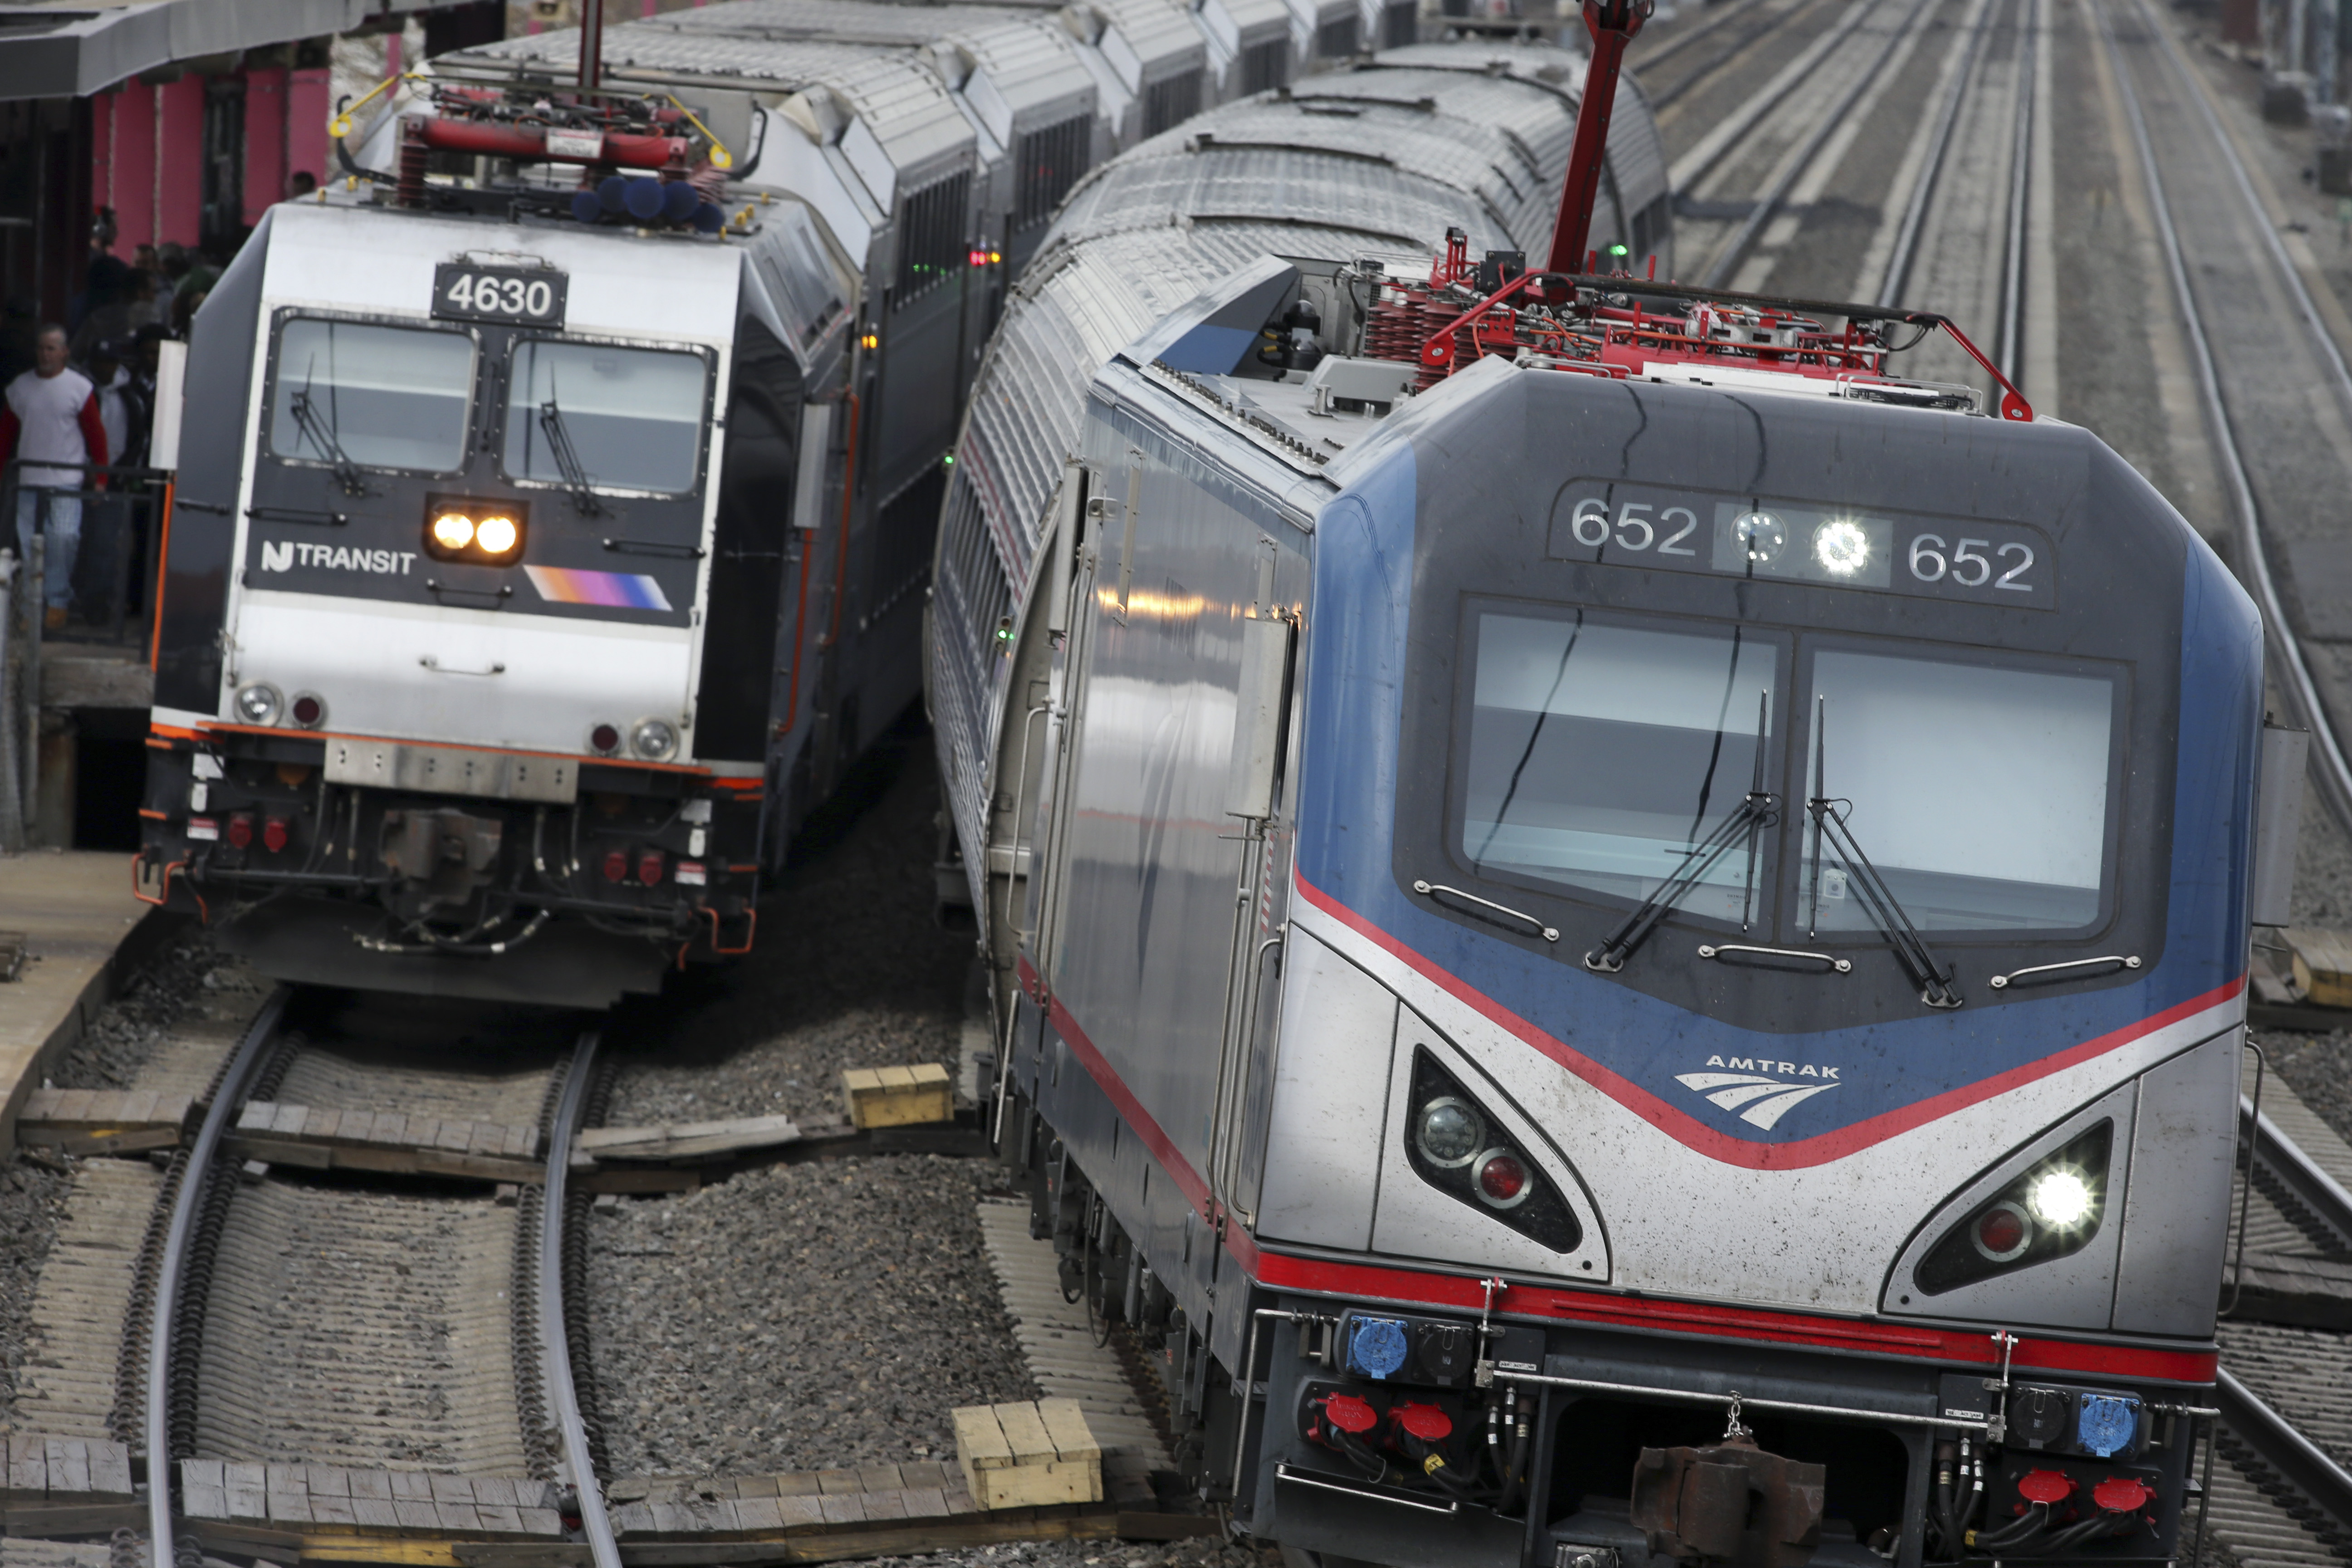 Amtrak deploys extra officers after Brussels bombings